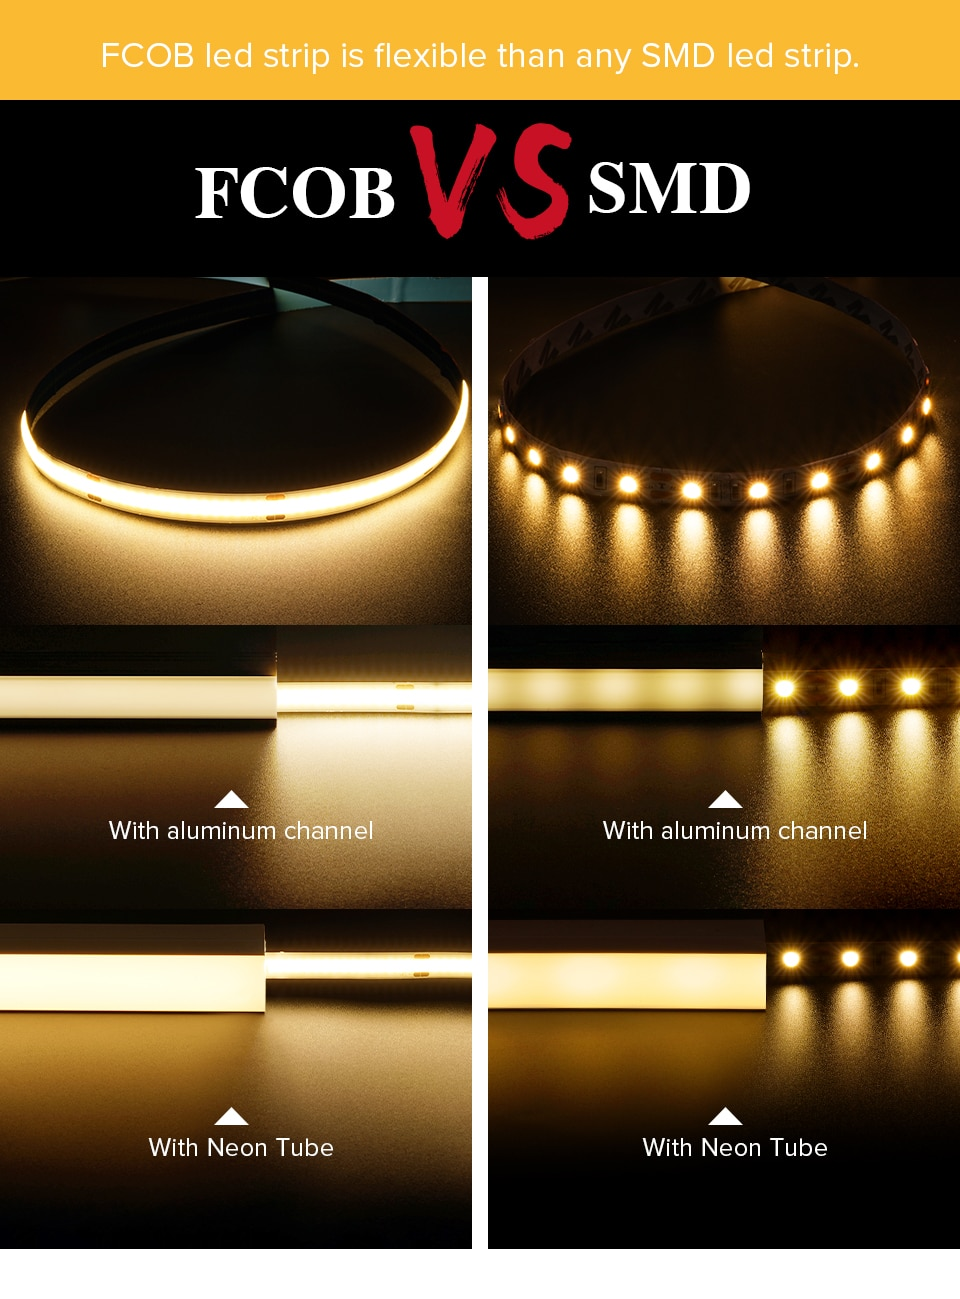 DC5V USB FCOB LED Light Strip 8mm PCB 320 LEDs High Density FOB COB Led Lights RA90 Flexible 4000K Nature White Linear Dimmable